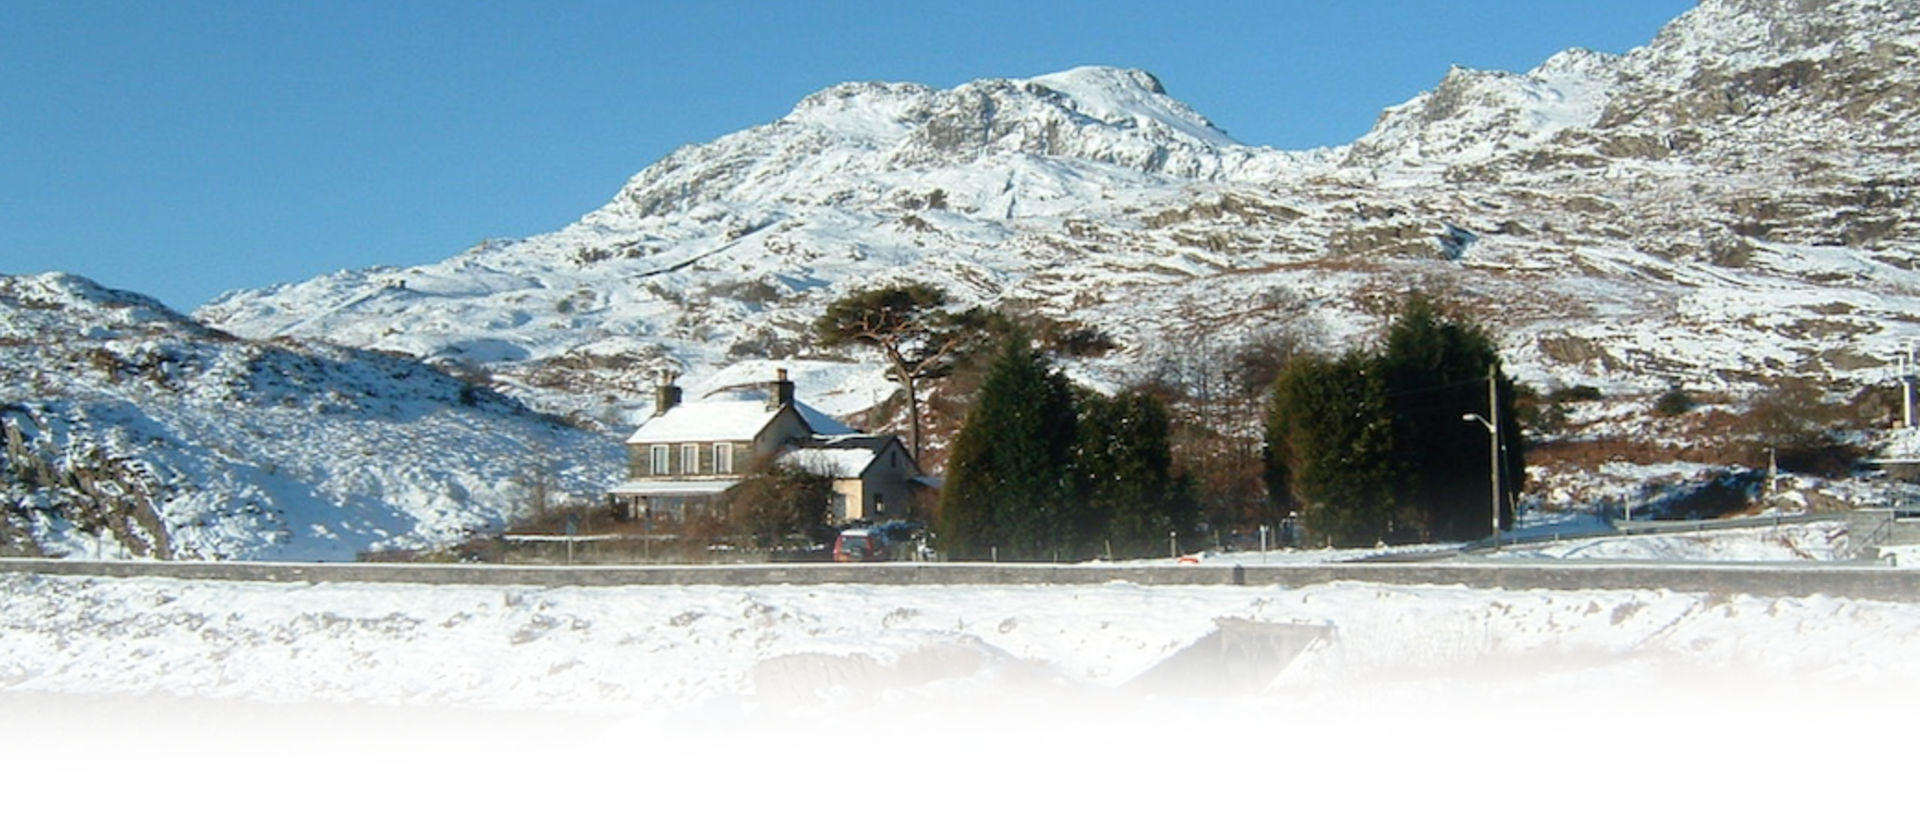 Bryn Elltyd Winter